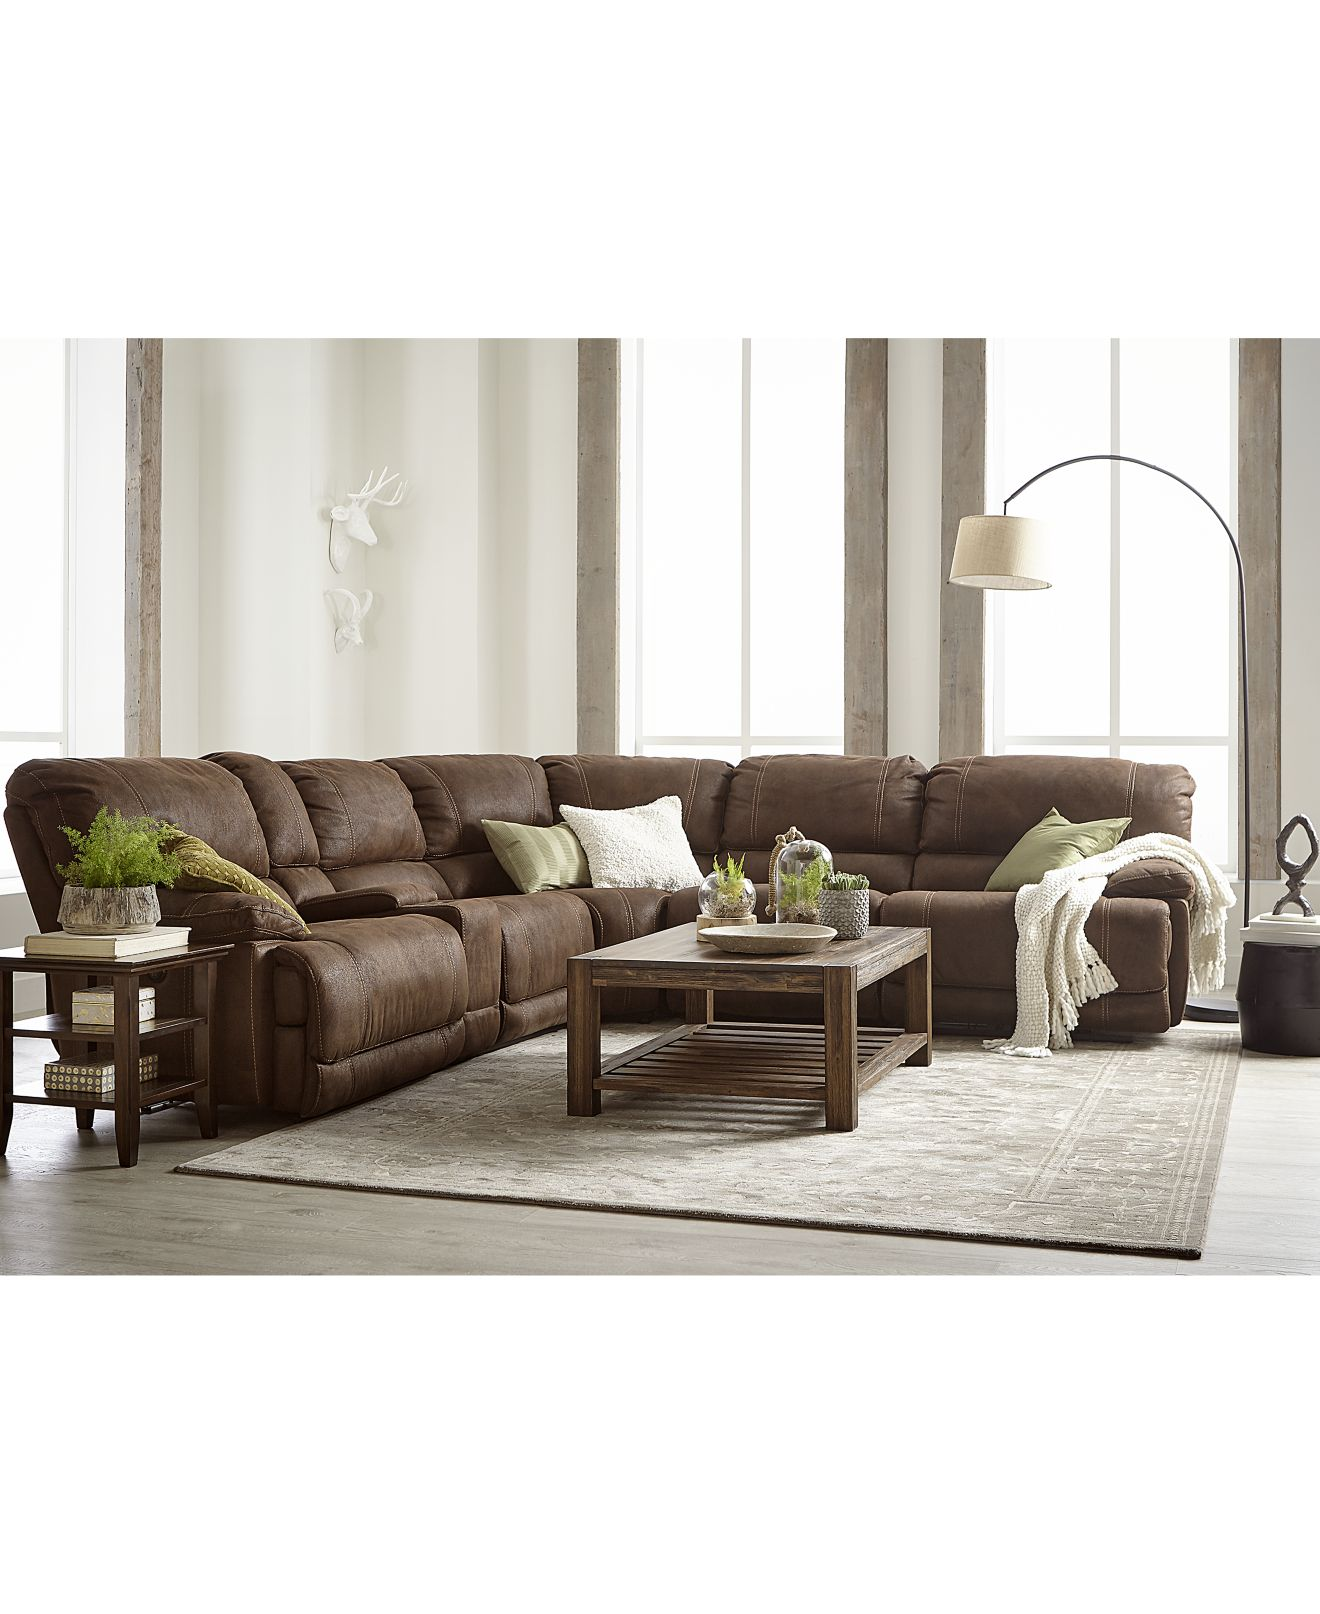 Jedd Fabric Sectional Living Room Furniture Collection Power Reclining